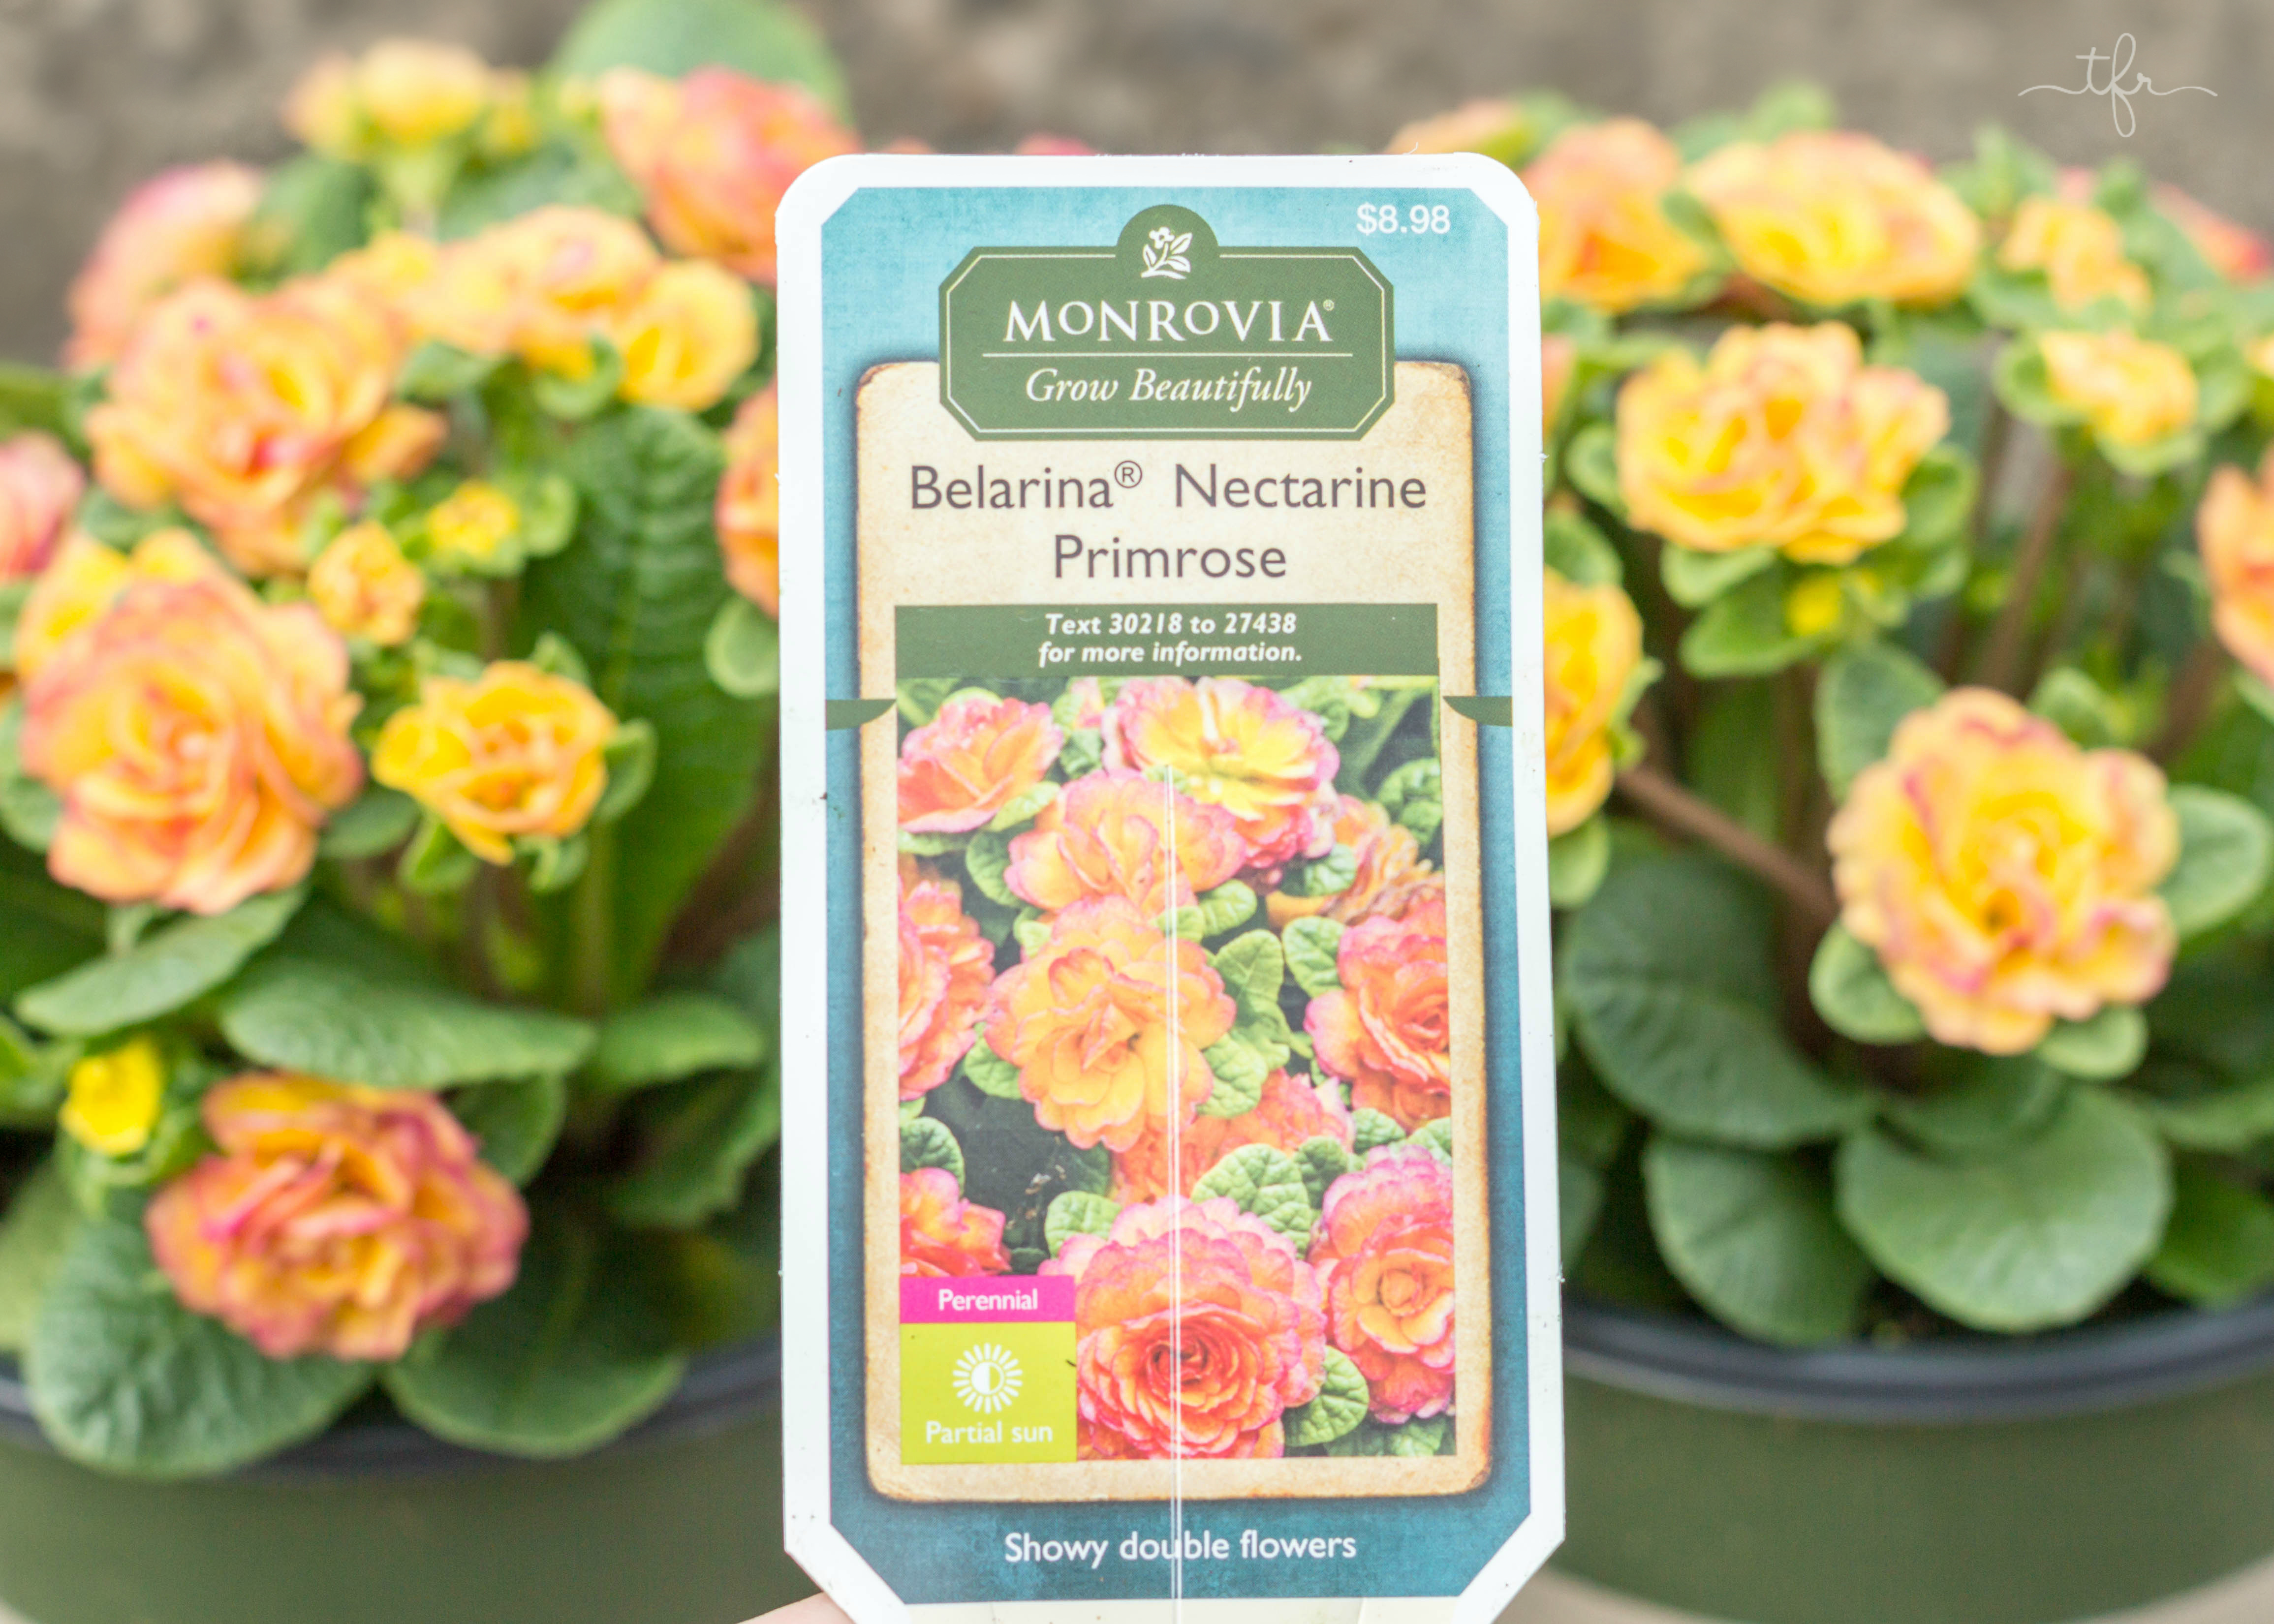 I decided to add some Belarina Nectarine Primrose, Belarina Valentine Primrose, and some Touch of Class Jacob's Ladder. These are all perfect plants to add a pop of color to your springtime garden. They are all shade loving perennials. I have one spot right on the edge of my garden that receives full sun, so I decided to add two Maché Ranunculus. You can purchase Monrovia plants for your garden online or at your local Lowe's.